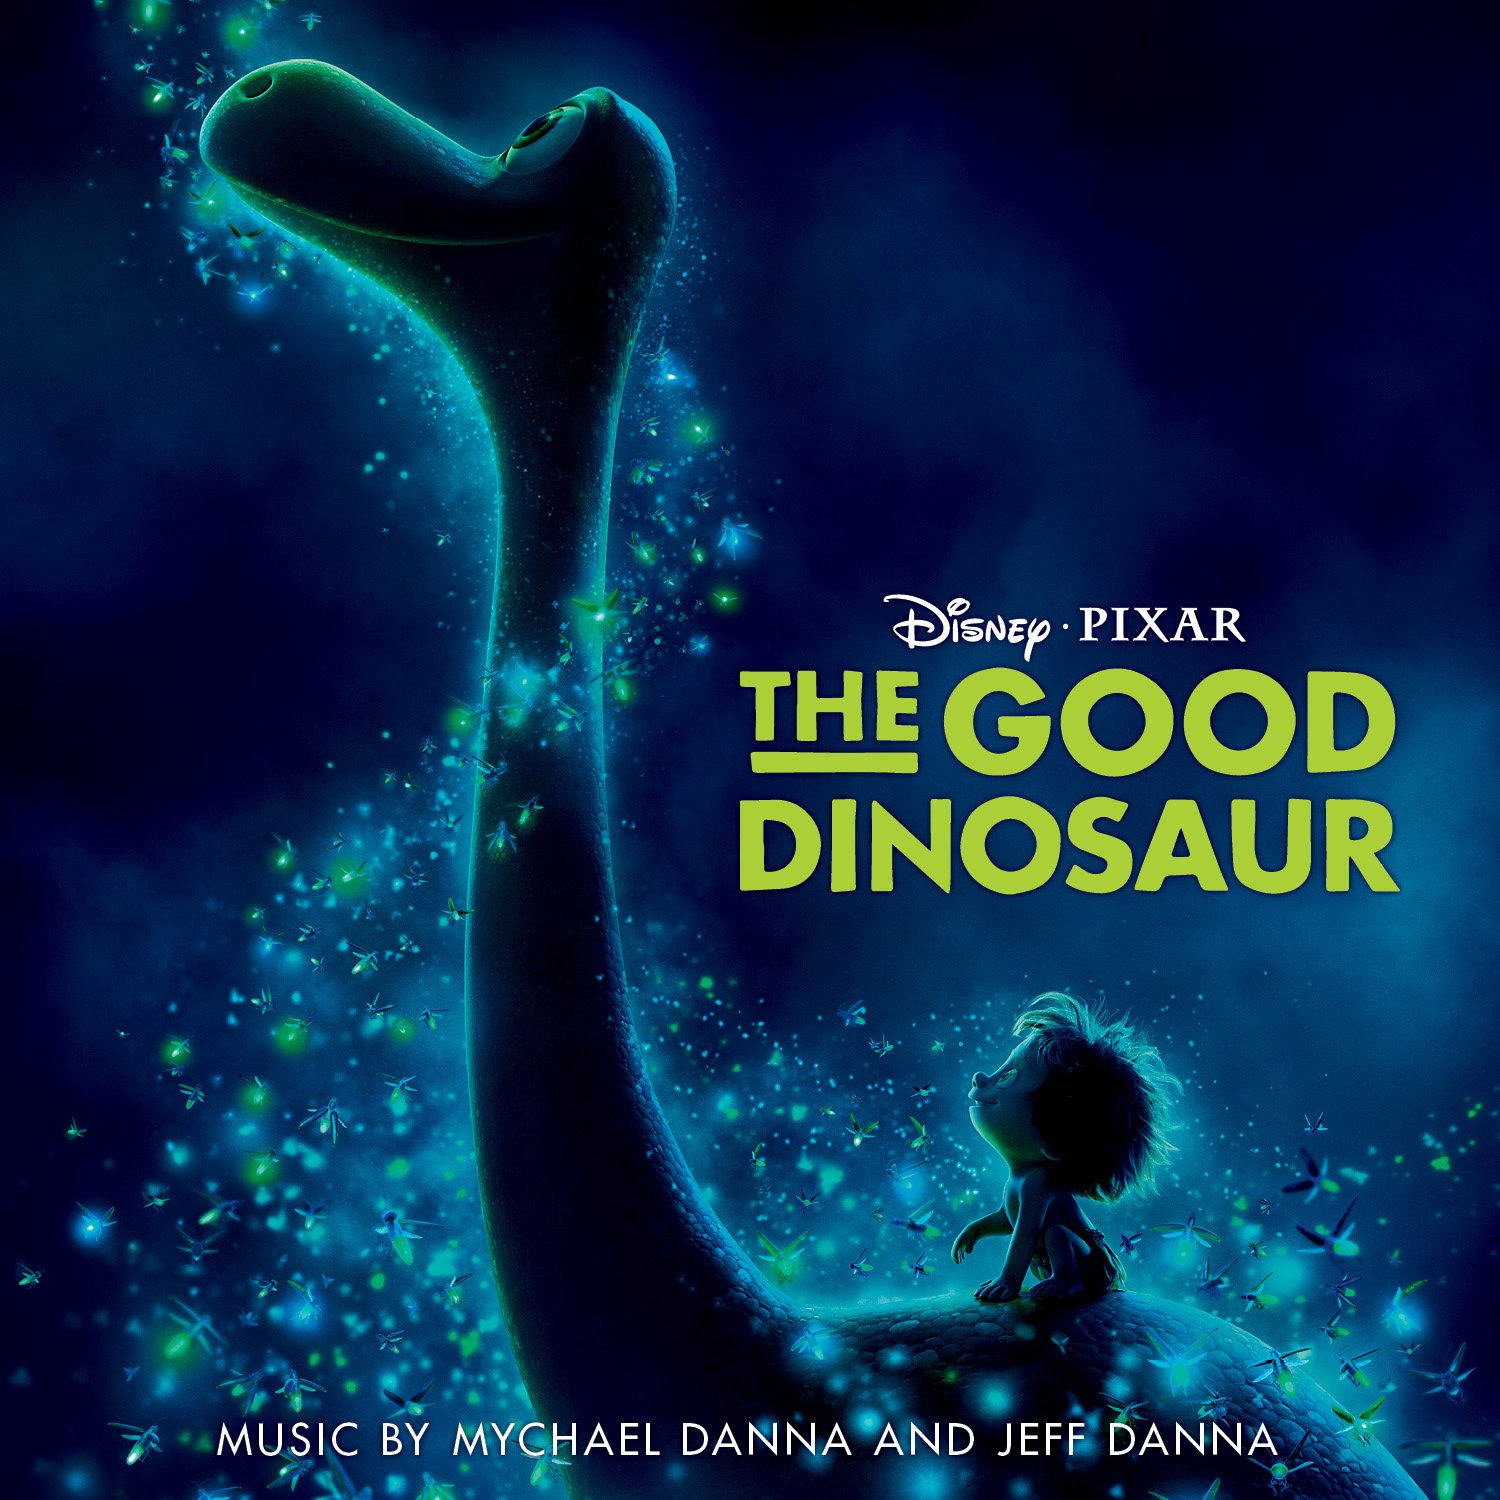 The Good Dinosaur (soundtrack)